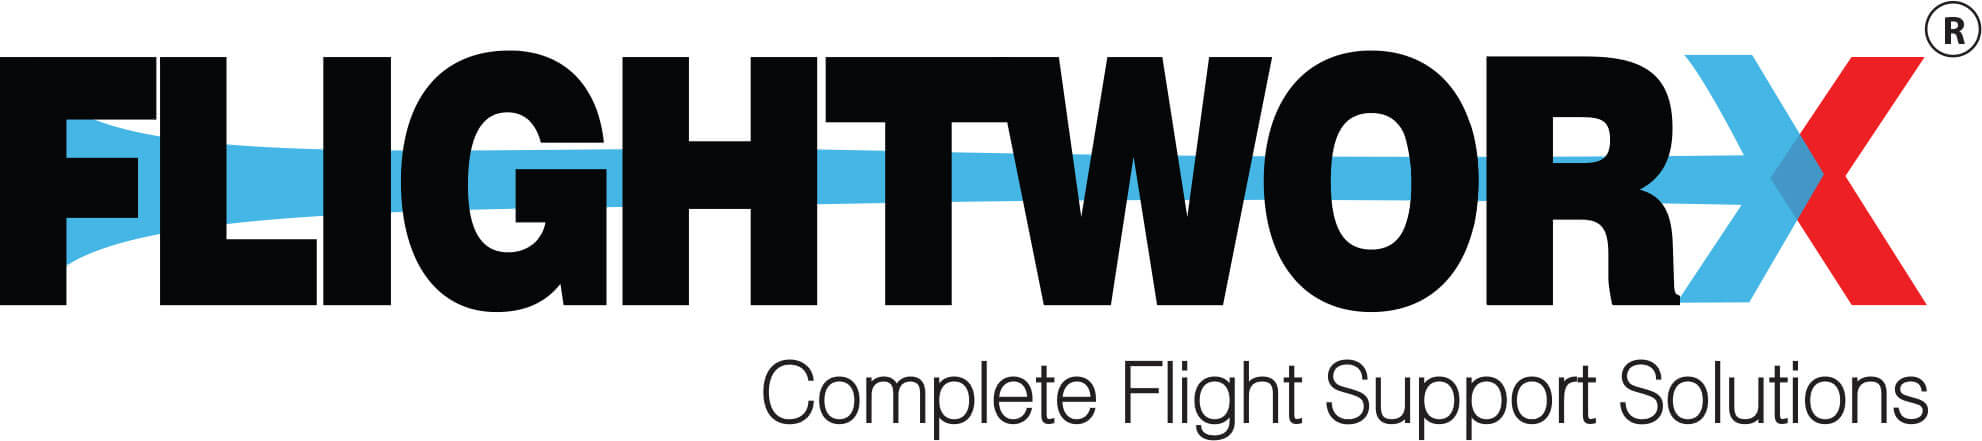 Flightworx logo